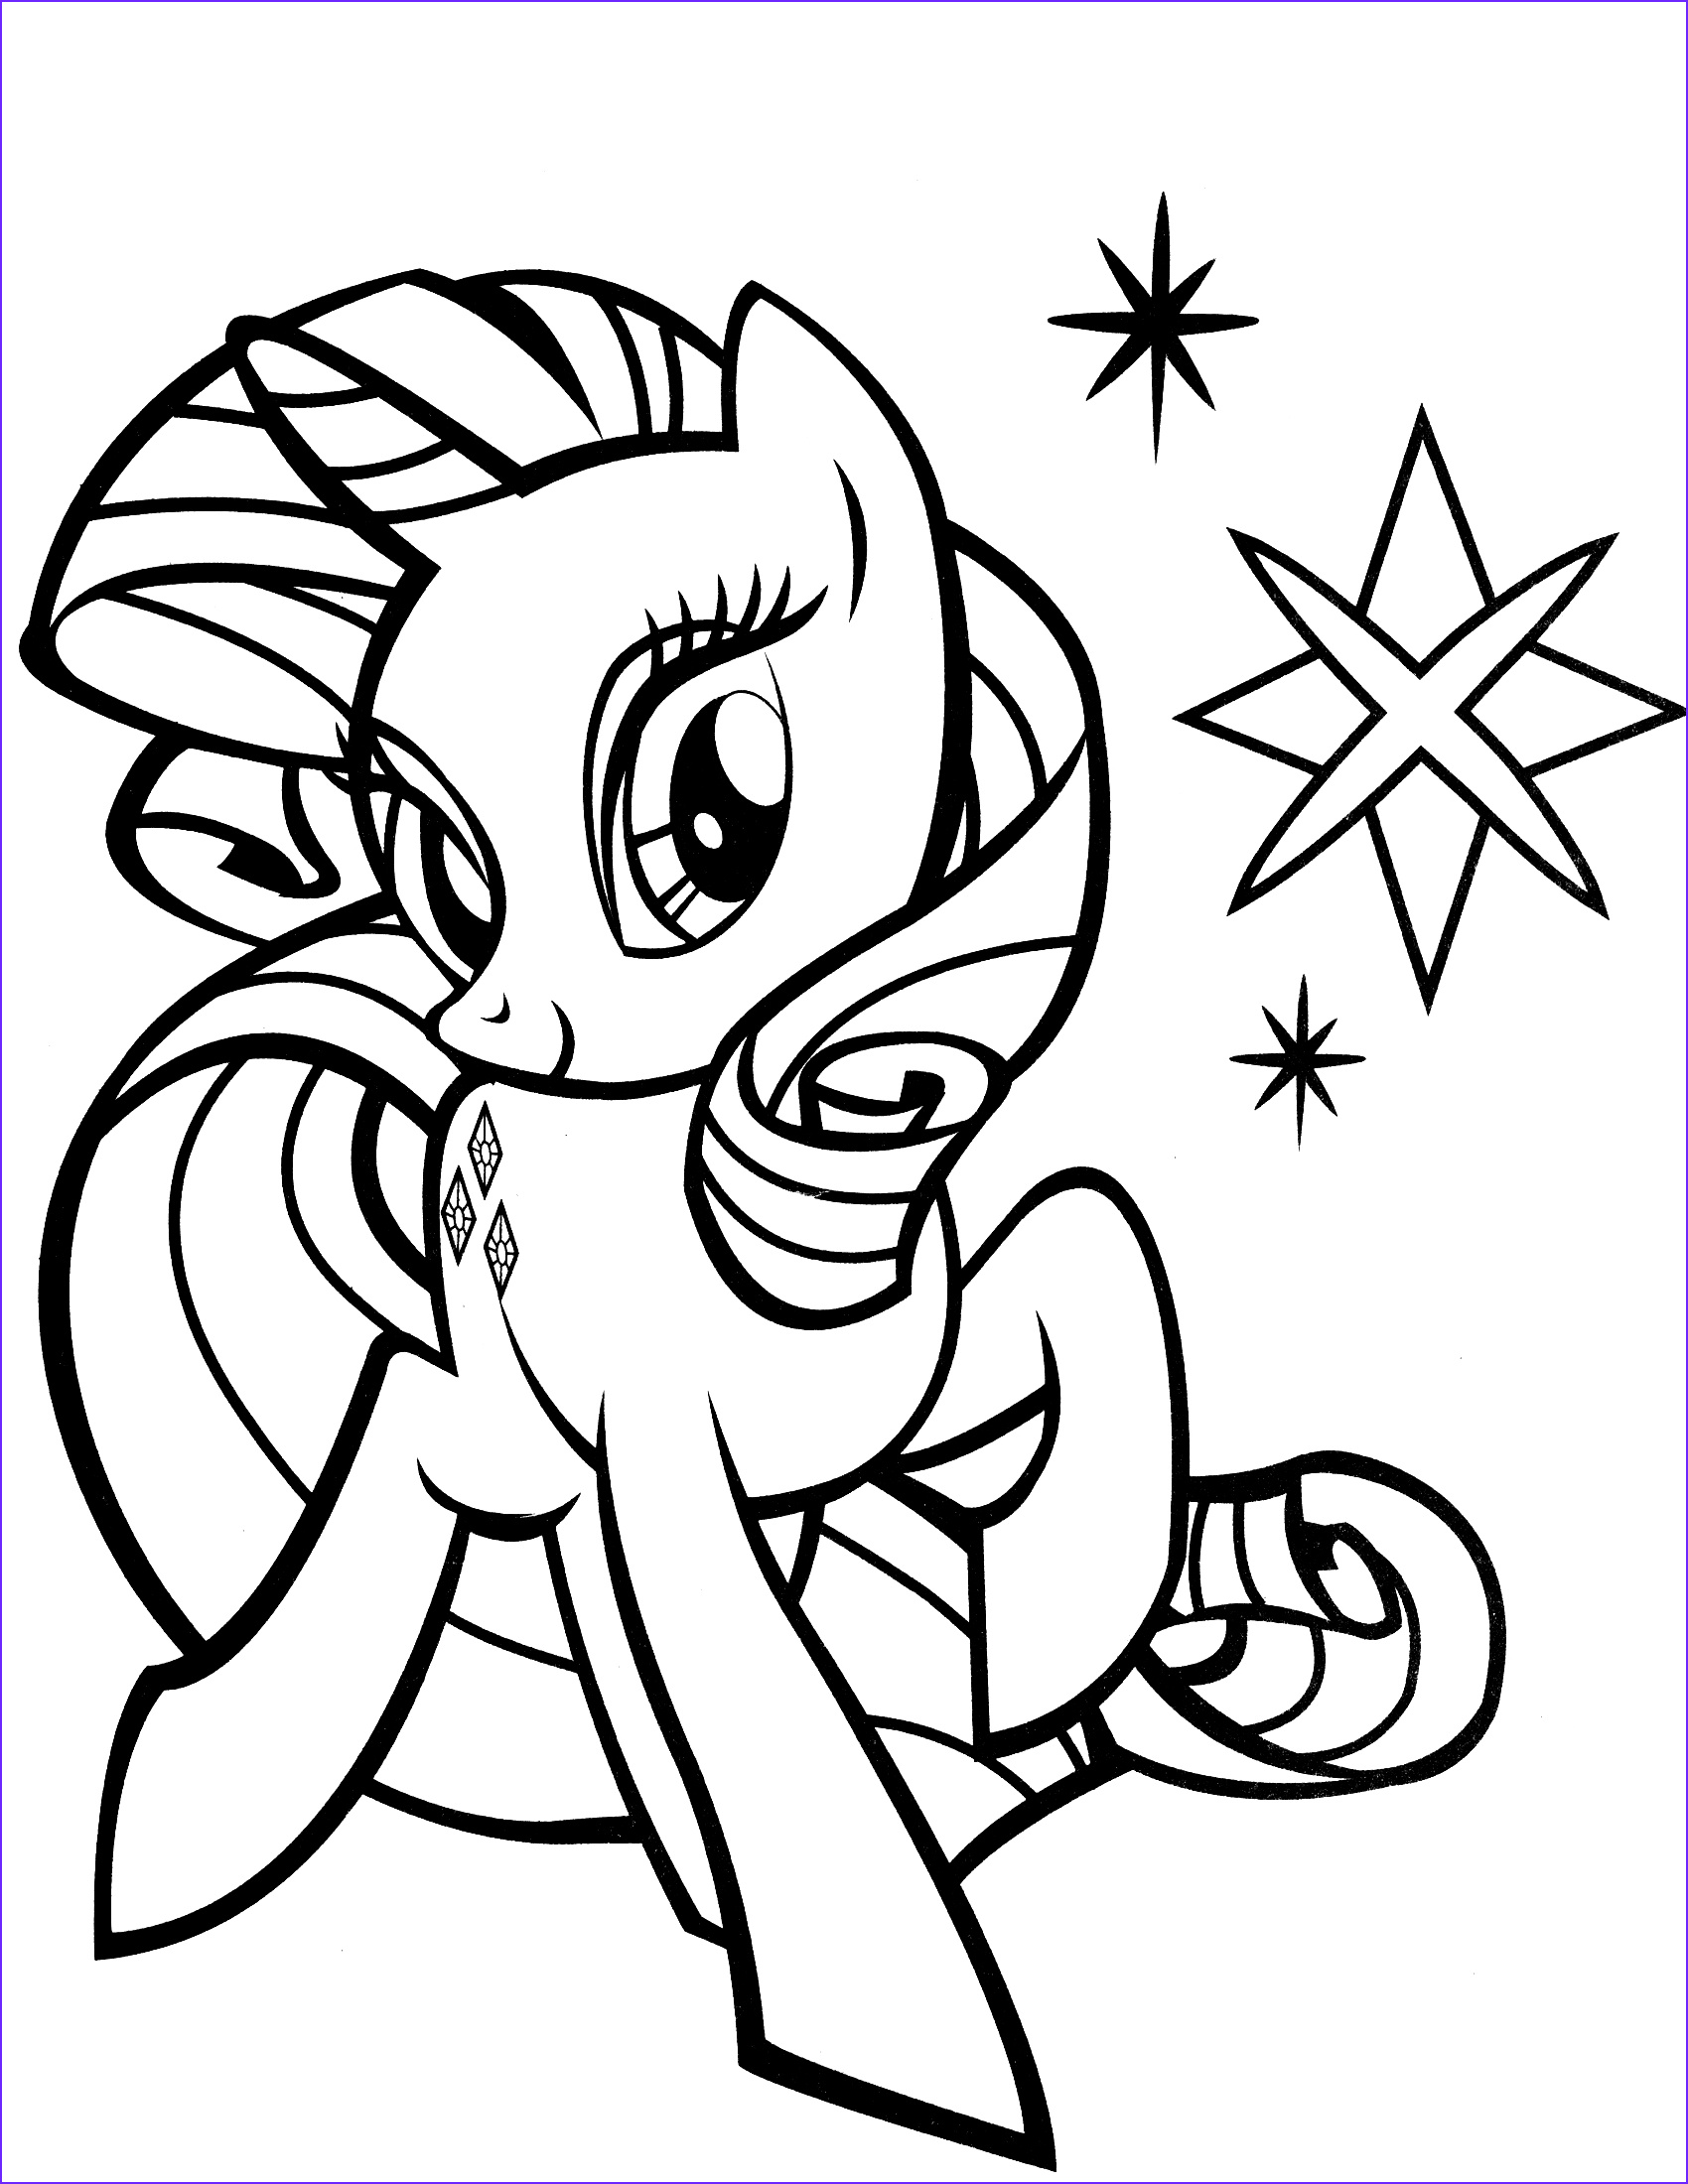 Coloring Pages My Little Pony New Photos My Little Pony Coloring Pages